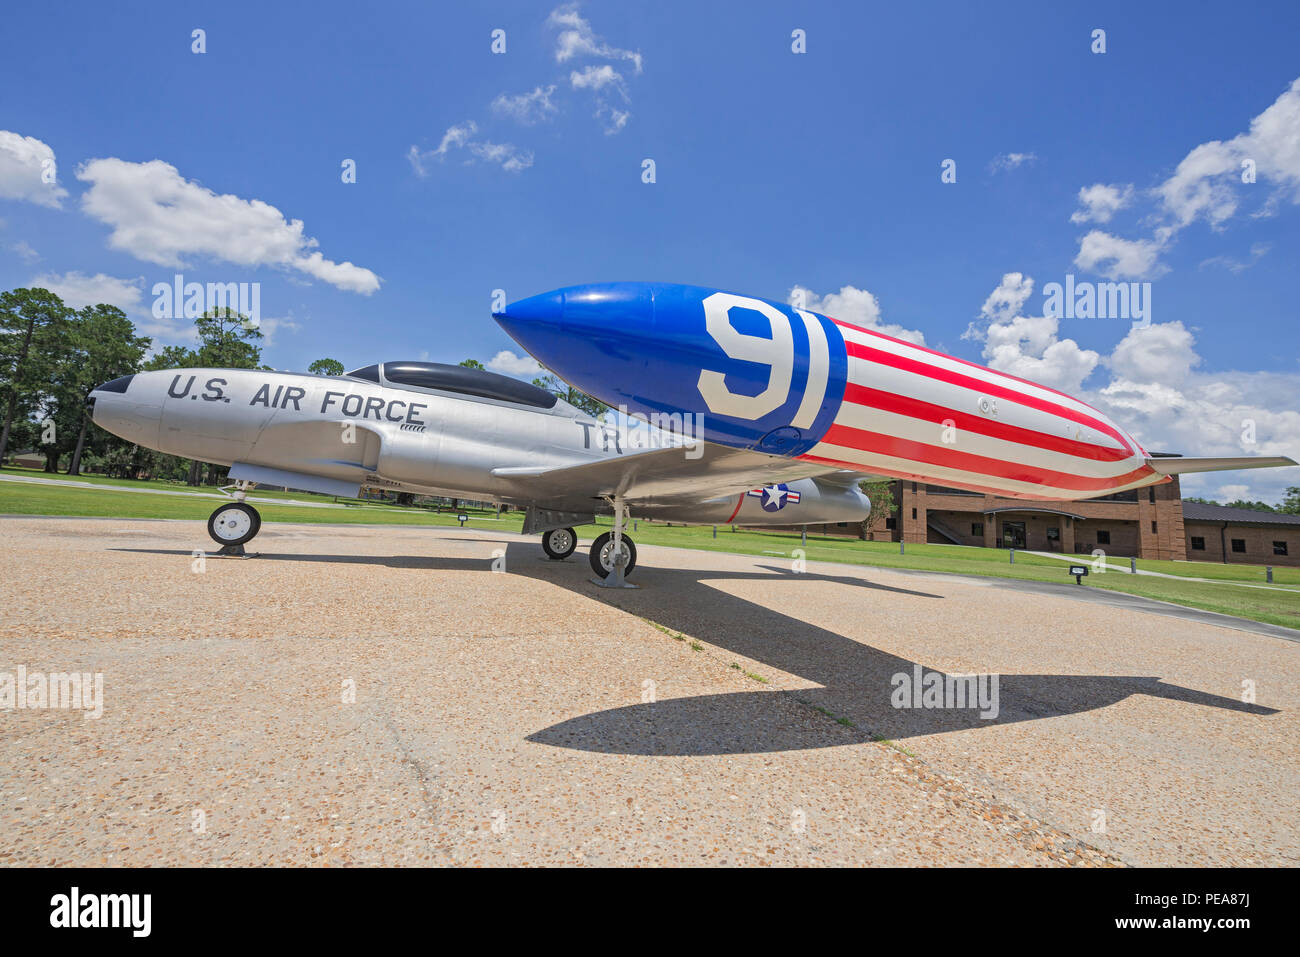 Air Park at Moody AFB was dedicated to President George W. Bush who was a pilot in training at Moody 1968-69. - Stock Image